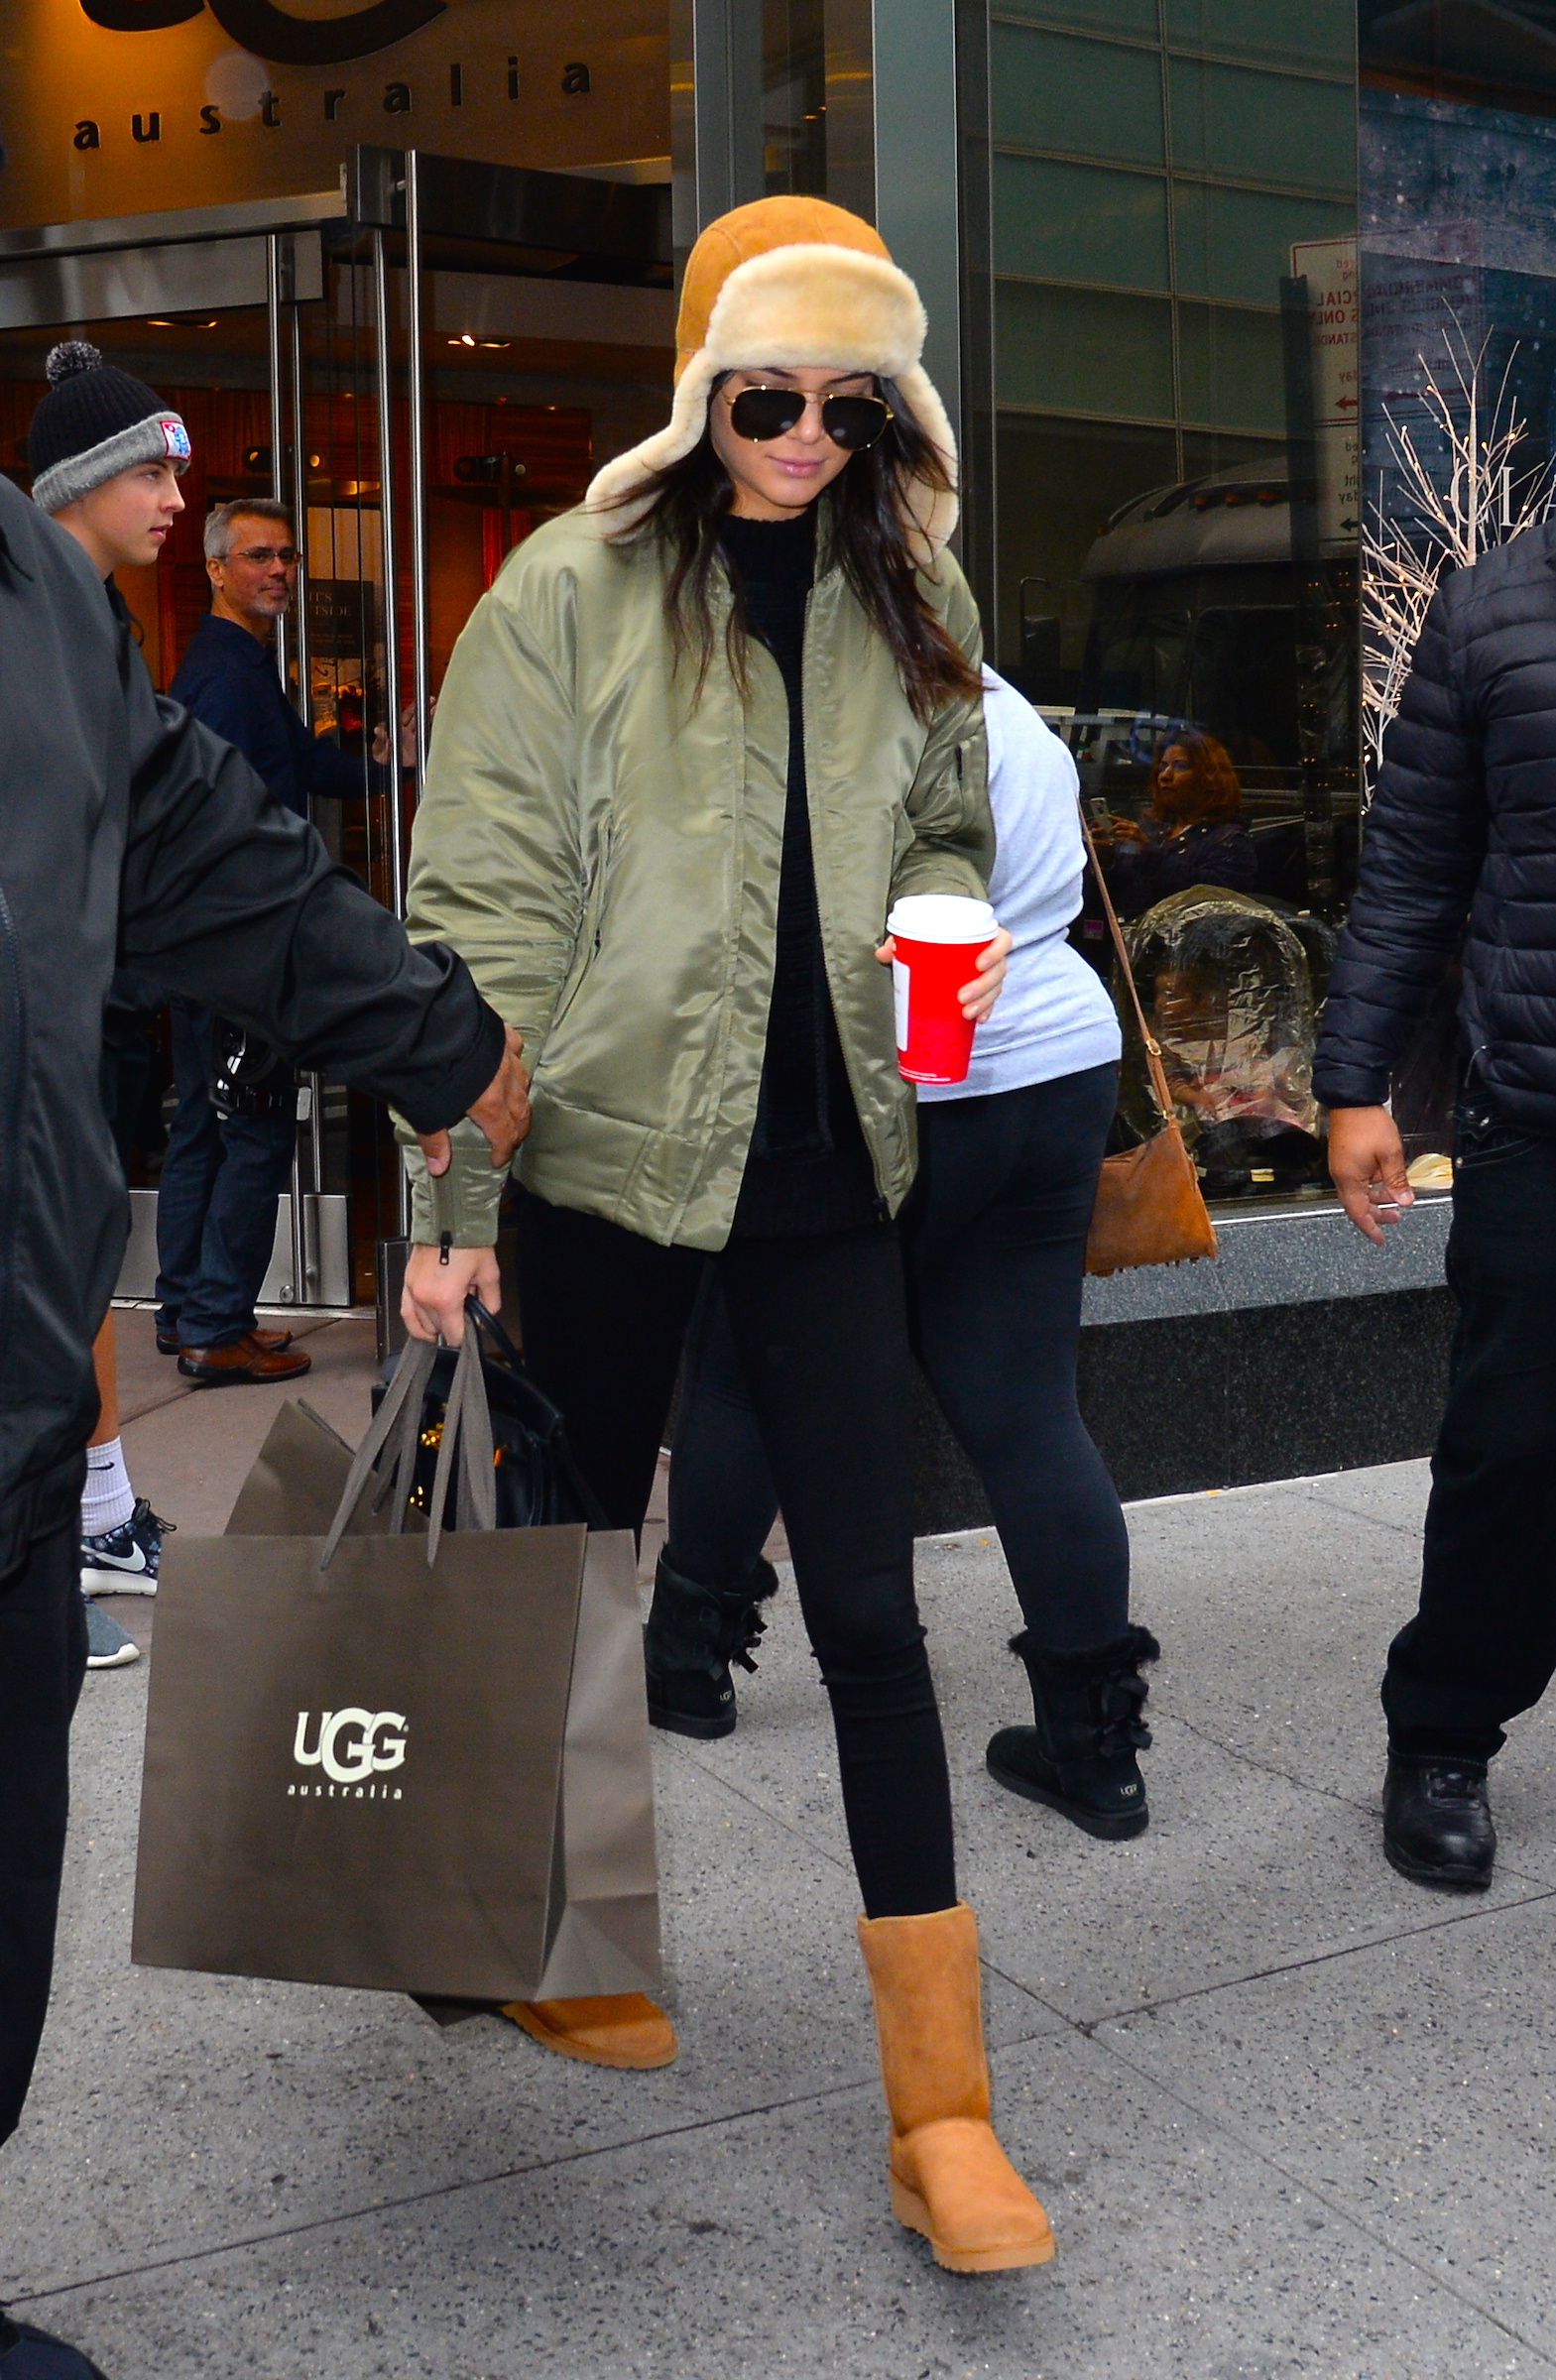 Ugg Boots Sale Where To Buy Ugg Boots Cheap Online